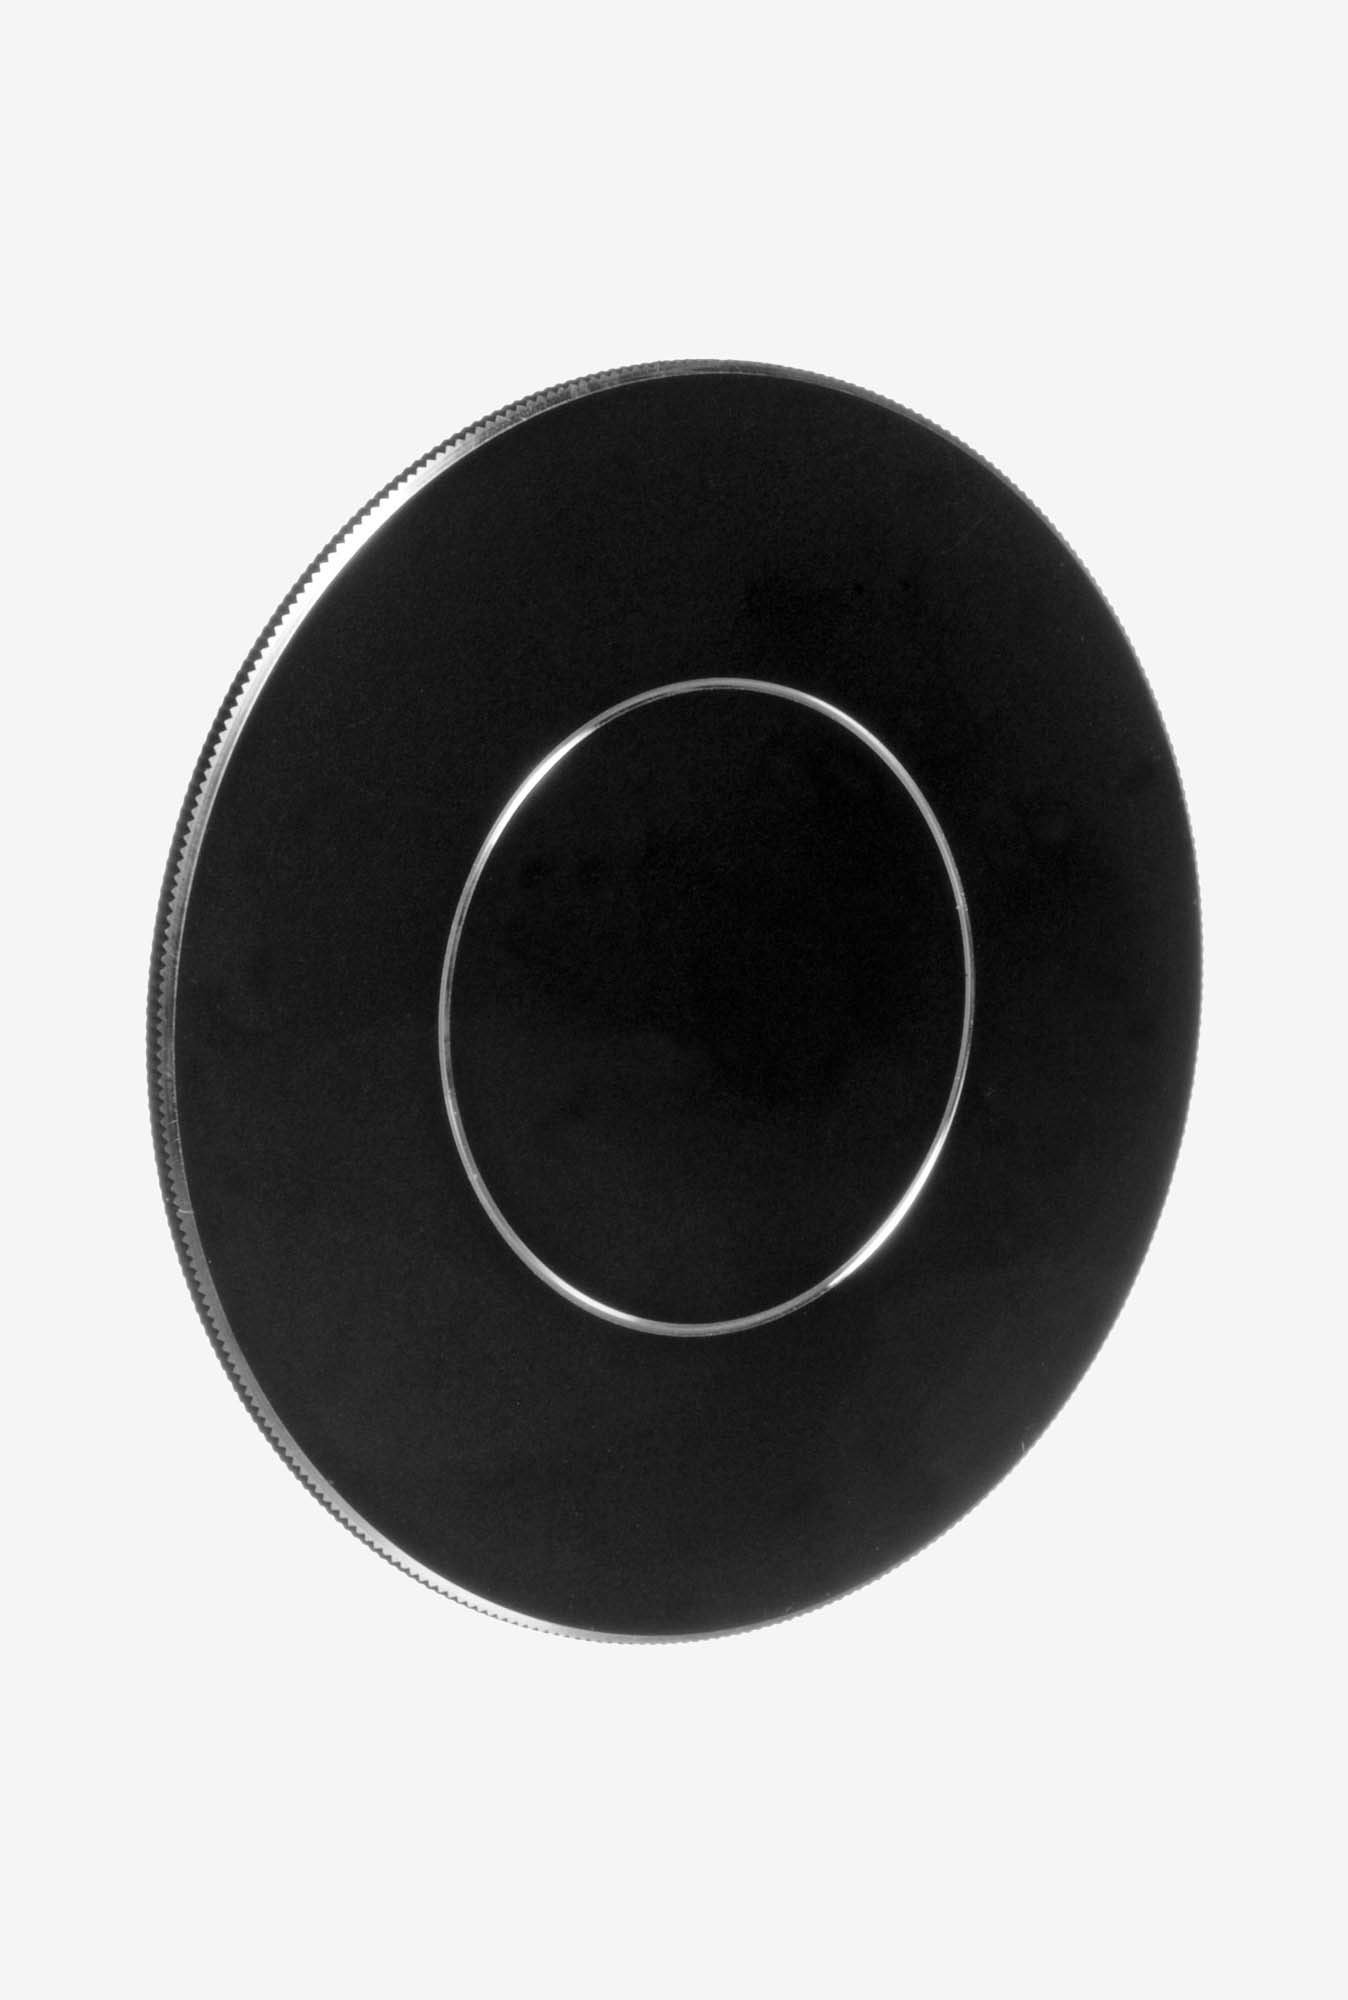 Sensei LCM58 58mm Screw-In Metal Lens Cap (Black)